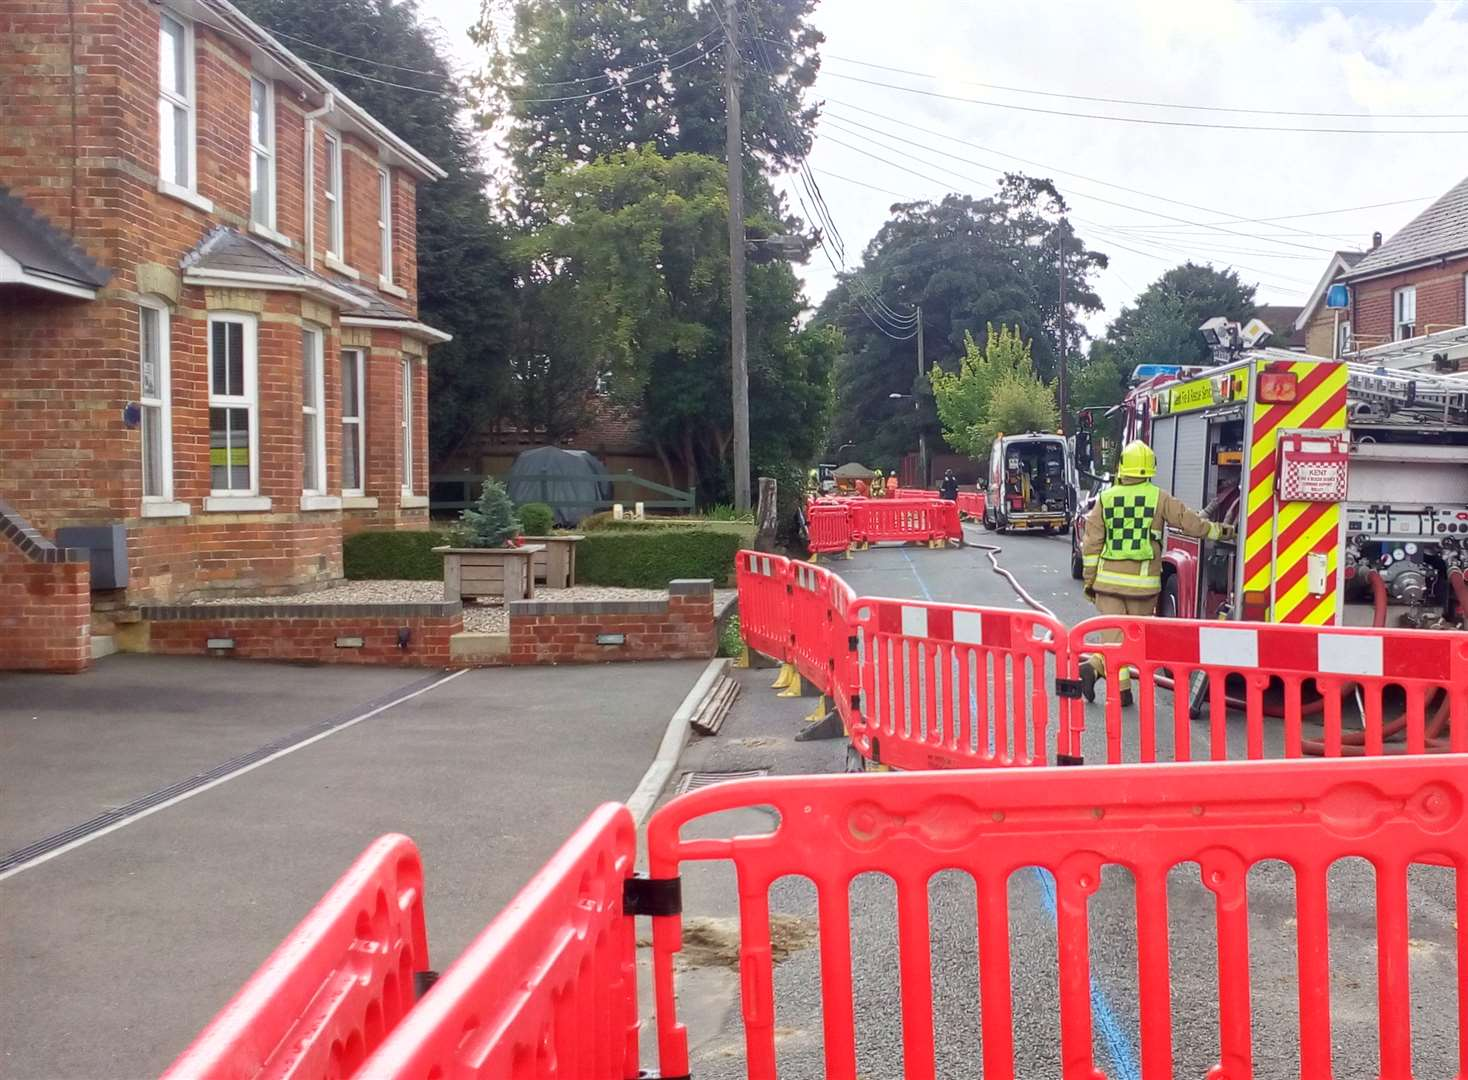 Homes evacuated after gas leak fire 'disaster'